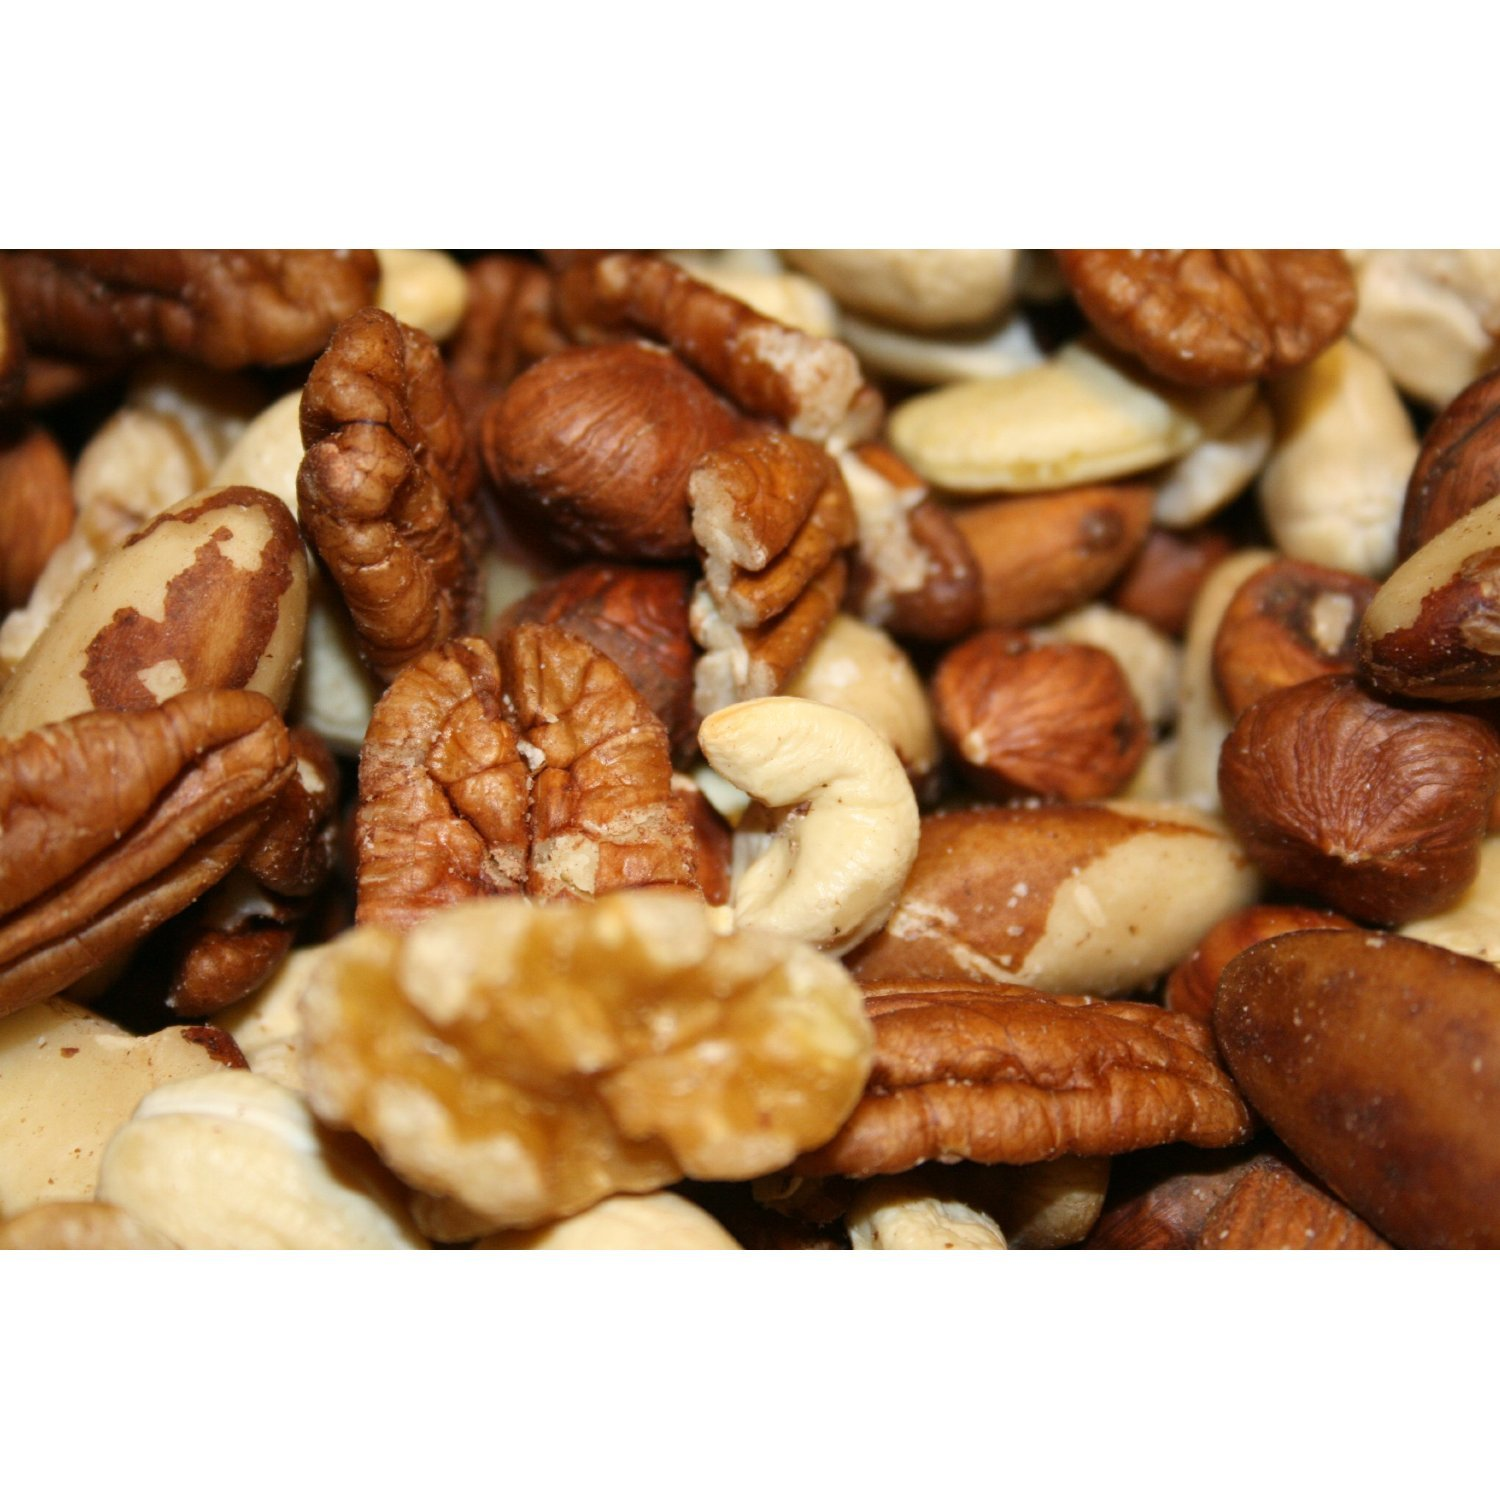 Raw Sale item Mixed 100% quality warranty! Nuts Pack 12 16oz of Bags